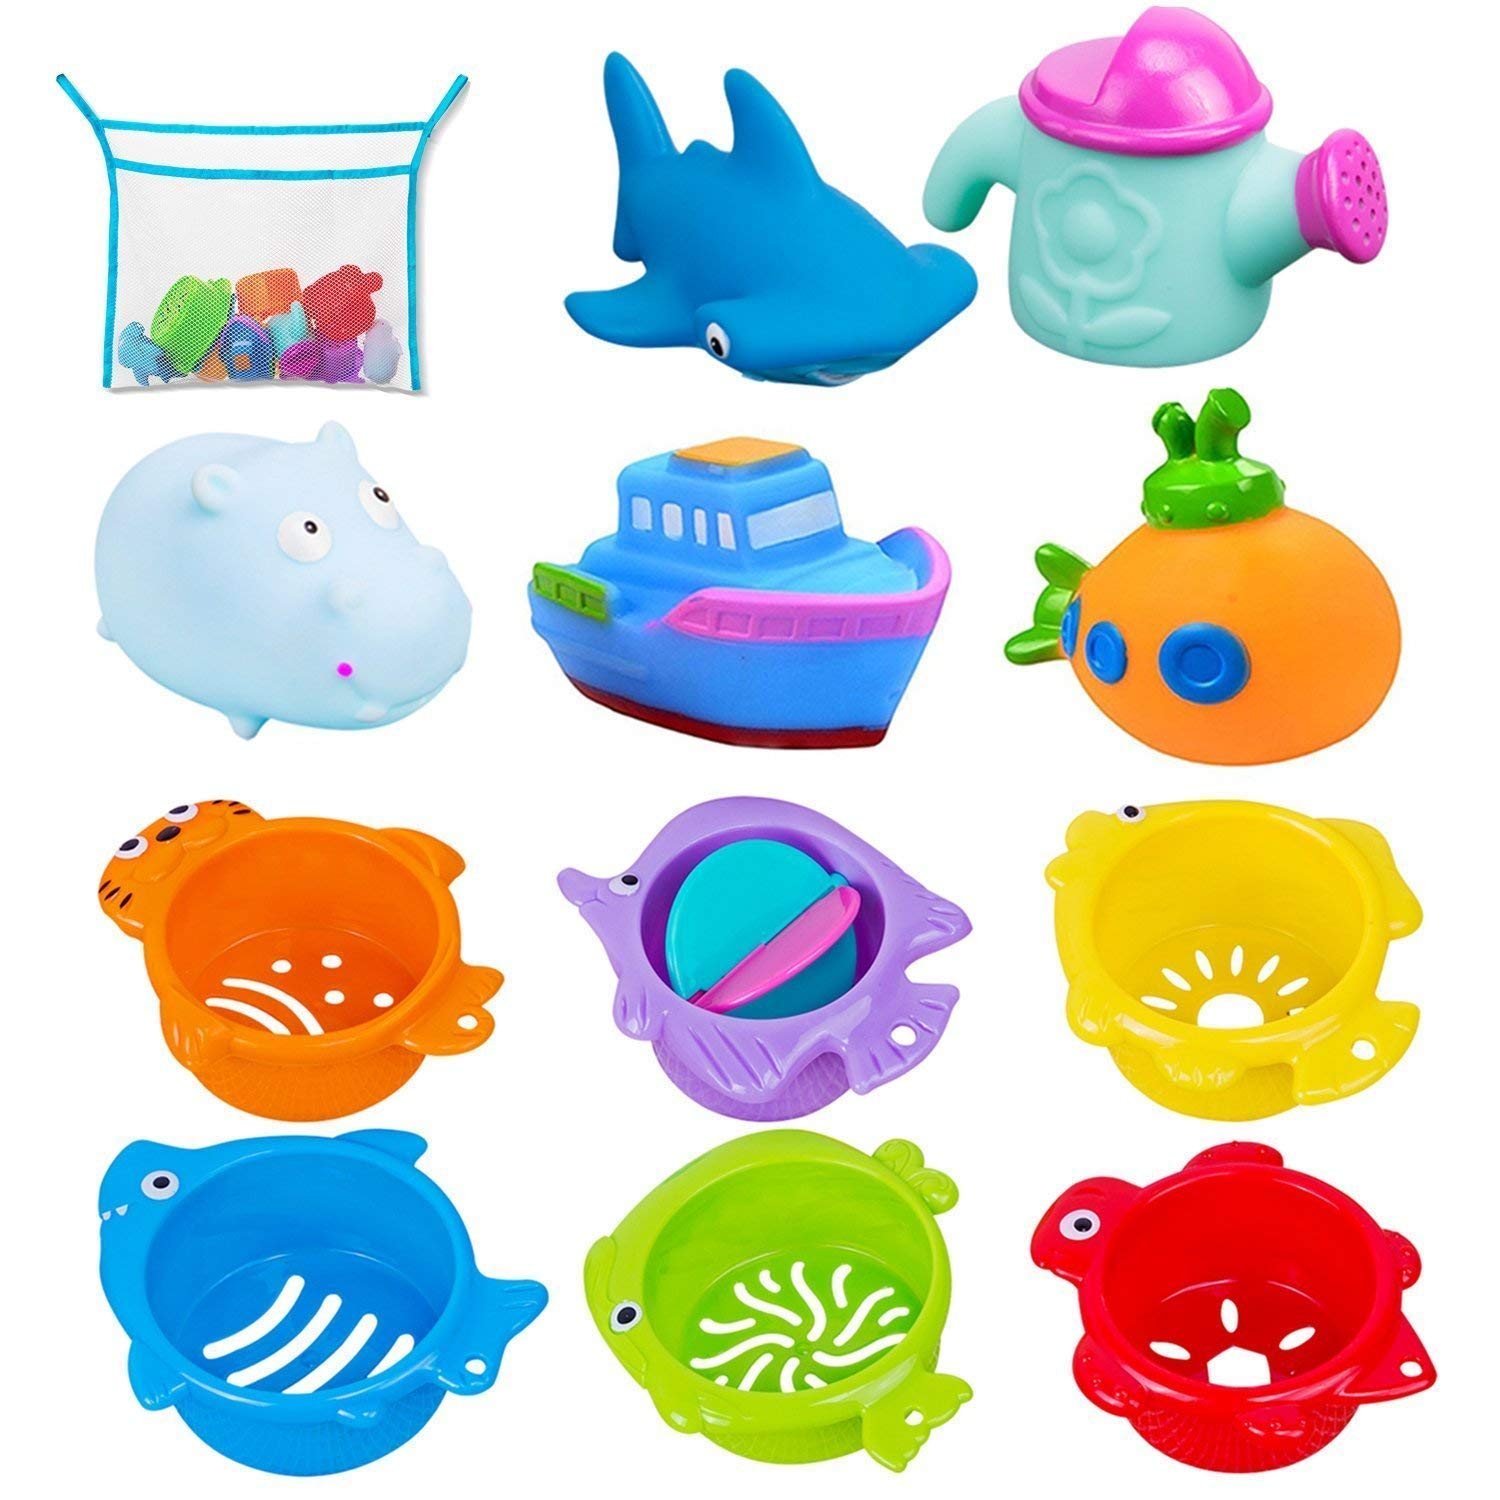 Bath Toys and Stacking Cups for Toddlers with Quick Dry Organizer Net-12 Pcs Early Educational Toy for Bathtub Game, Beach and Pool Party